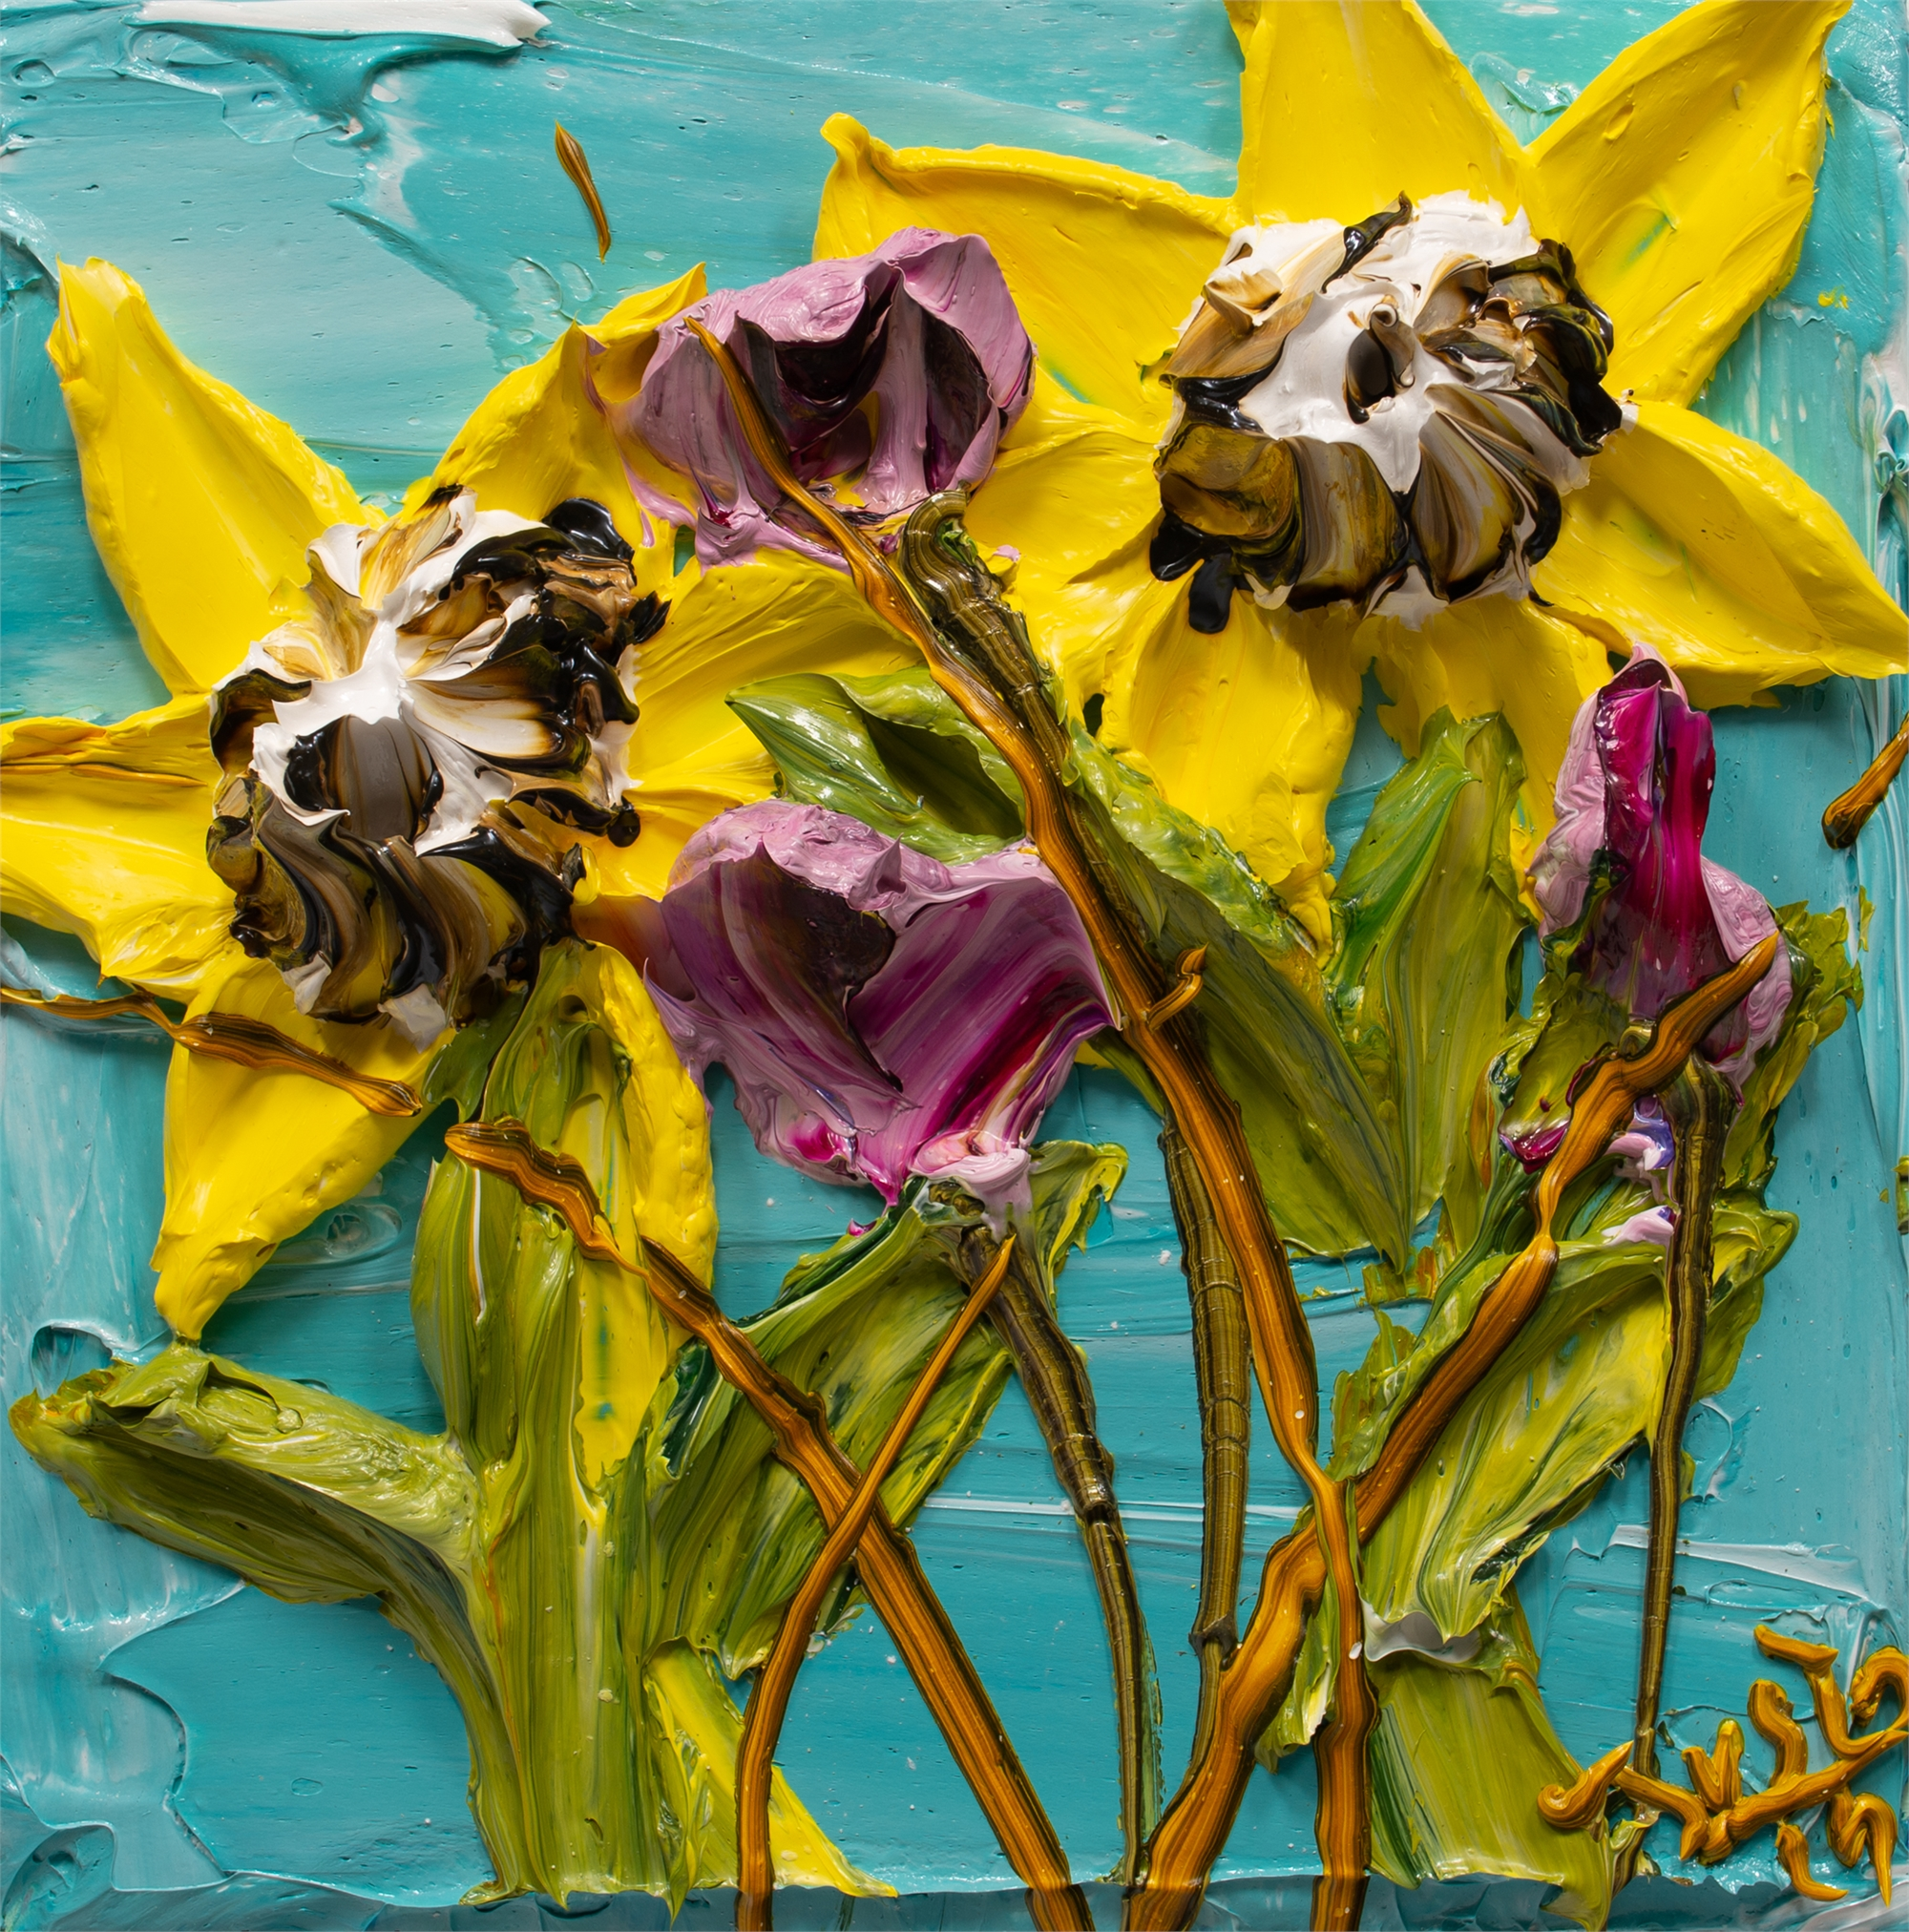 SUNFLOWERS-SF-12X12-2019-192 by JUSTIN GAFFREY